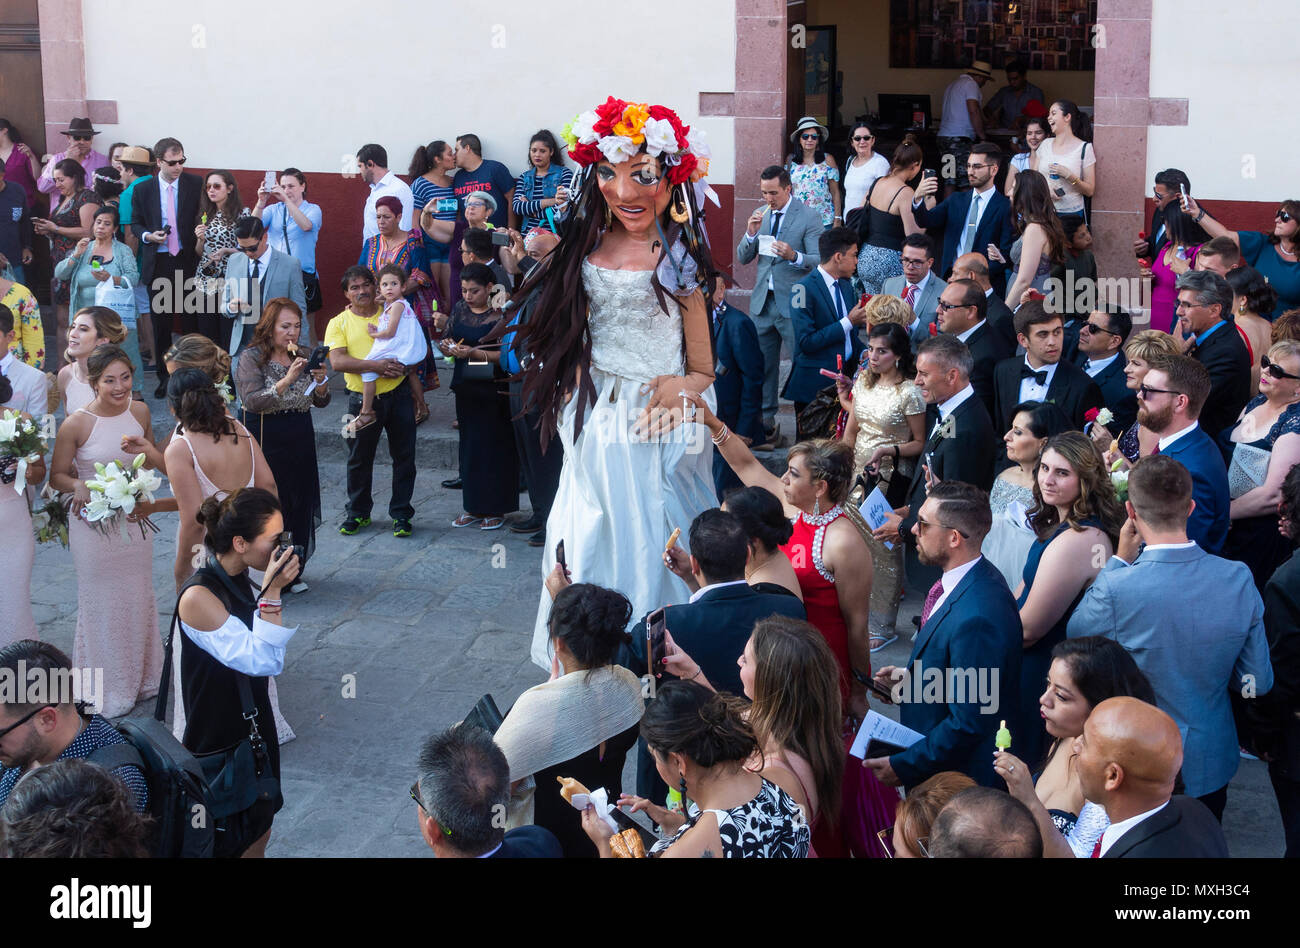 A mojigangas woman dancing to celebrate at a wedding party - Stock Image